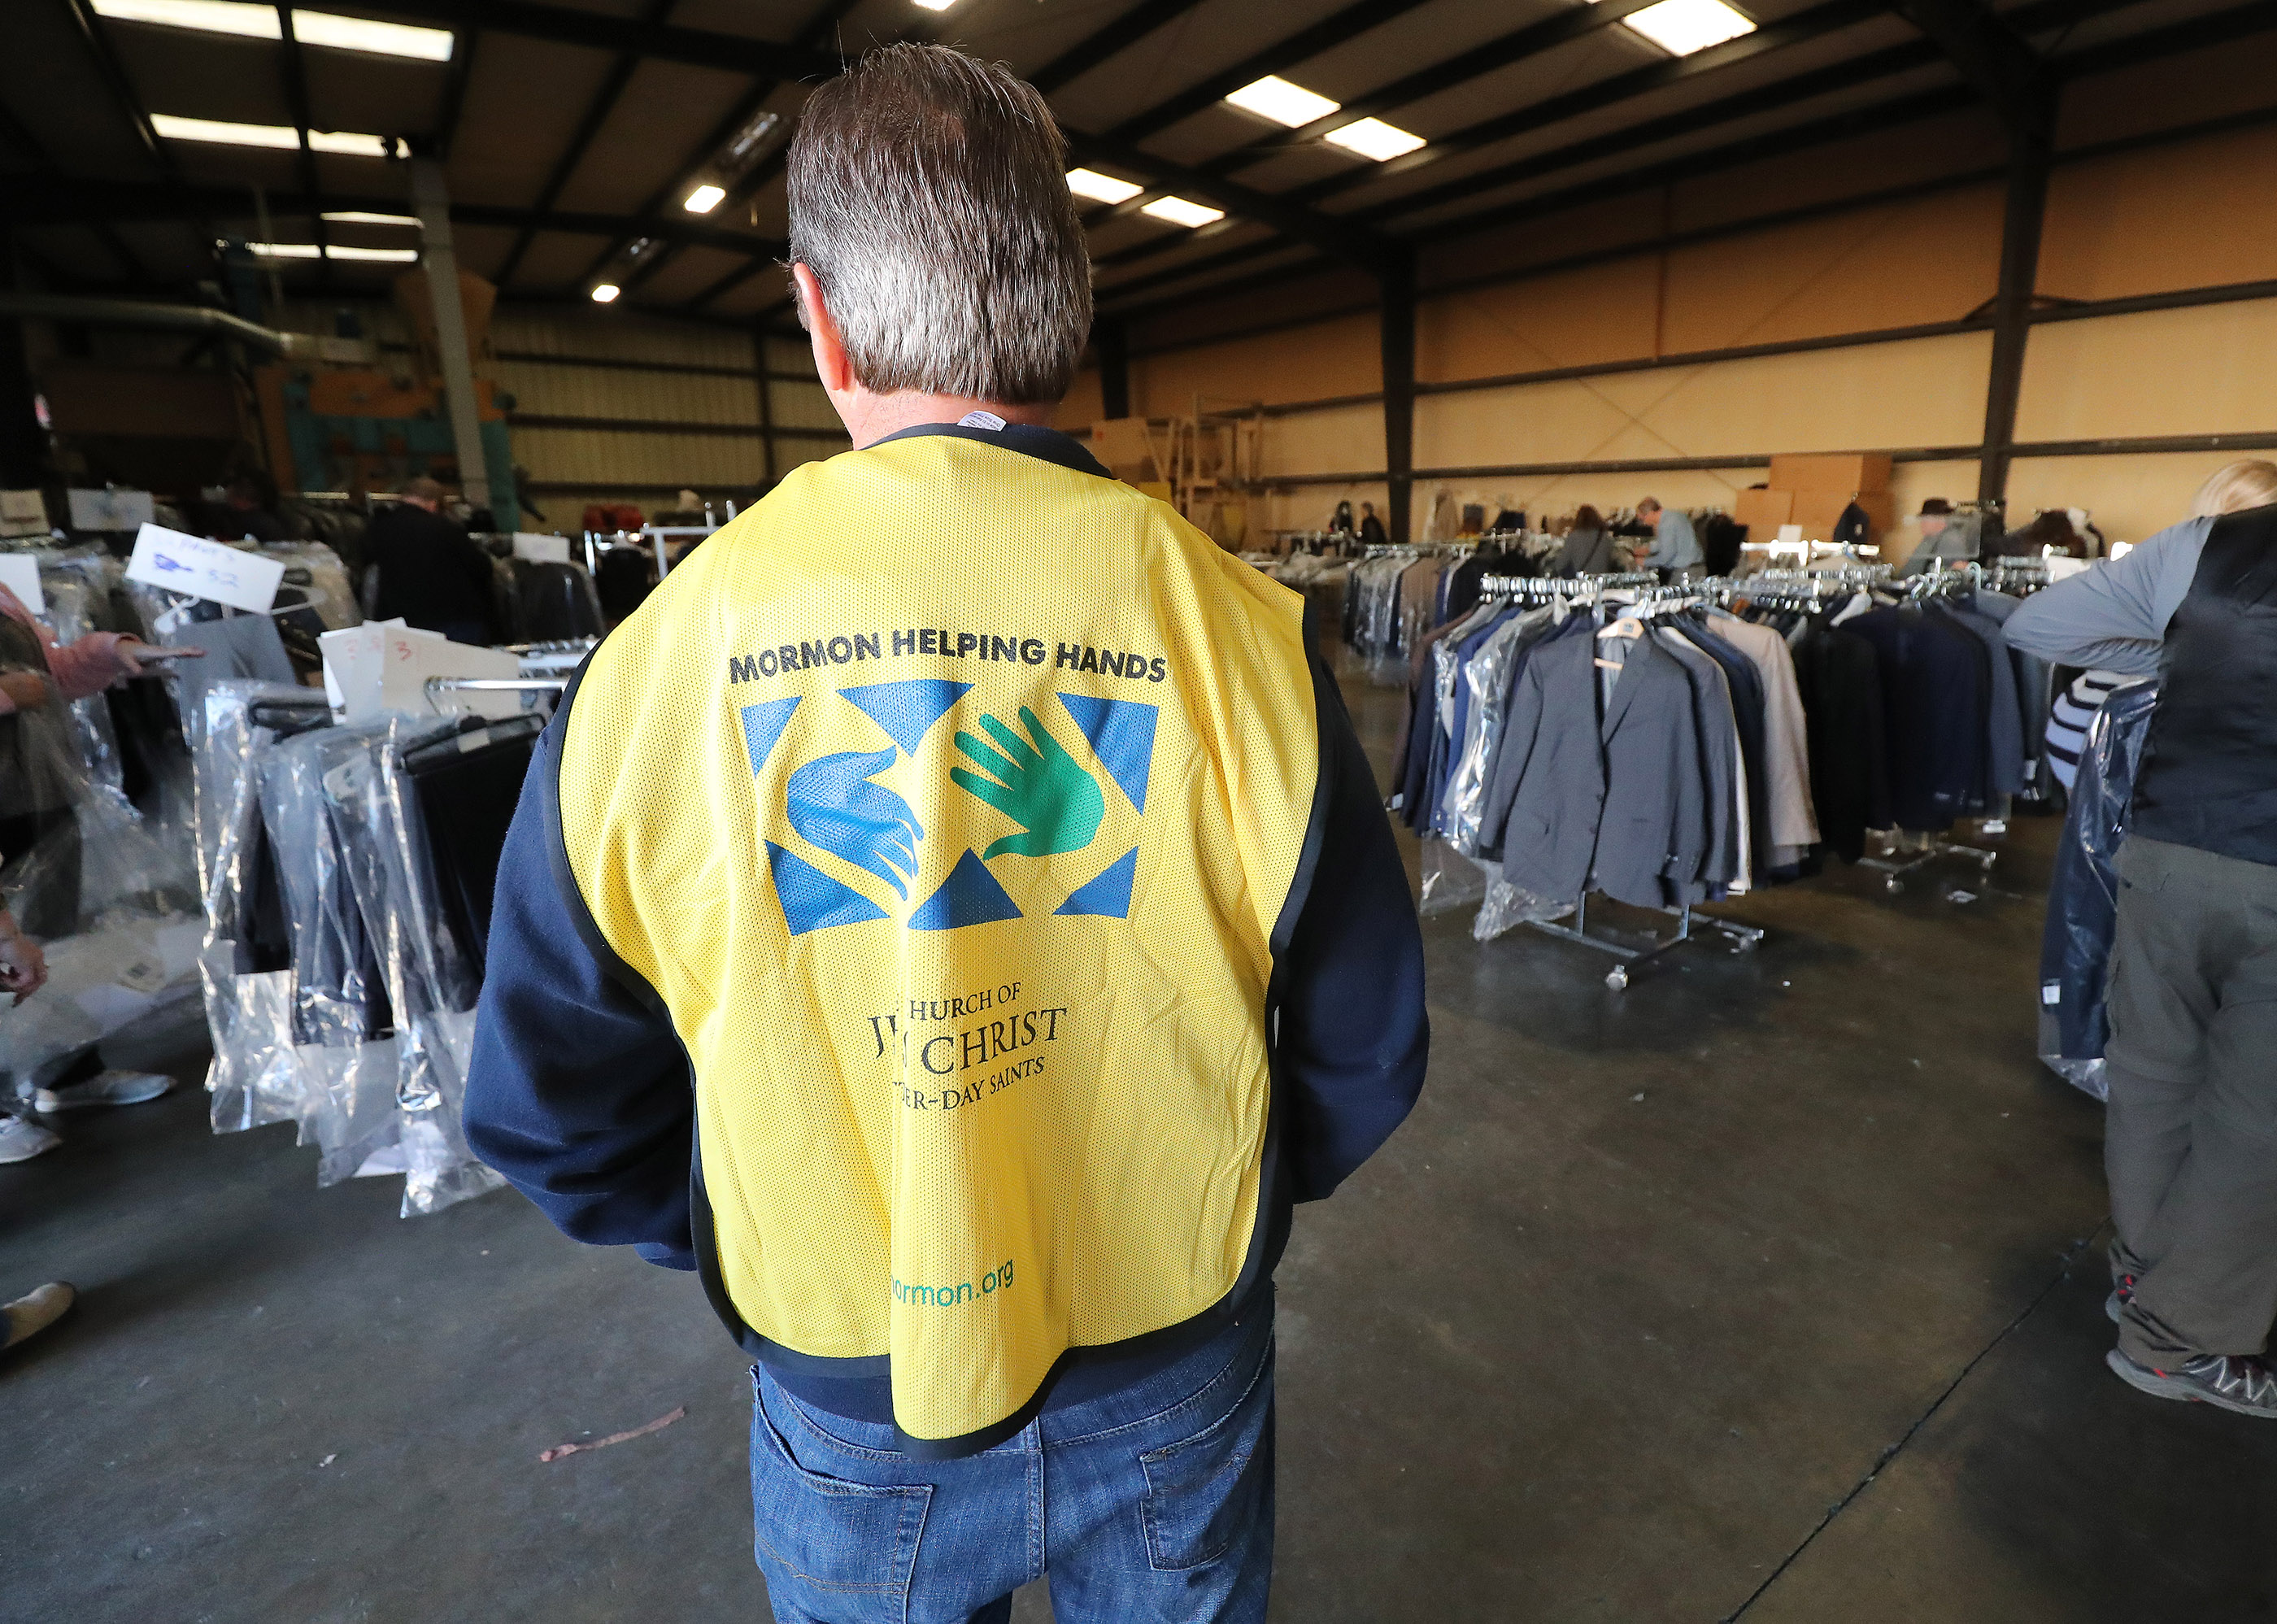 Free suites are given away through Working Wardrobes with help of LDS Helping Hands in Chico, California, on Saturday, Jan. 12, 2019, two months after the Camp Fire destroyed more than 18,000 homes and businesses.